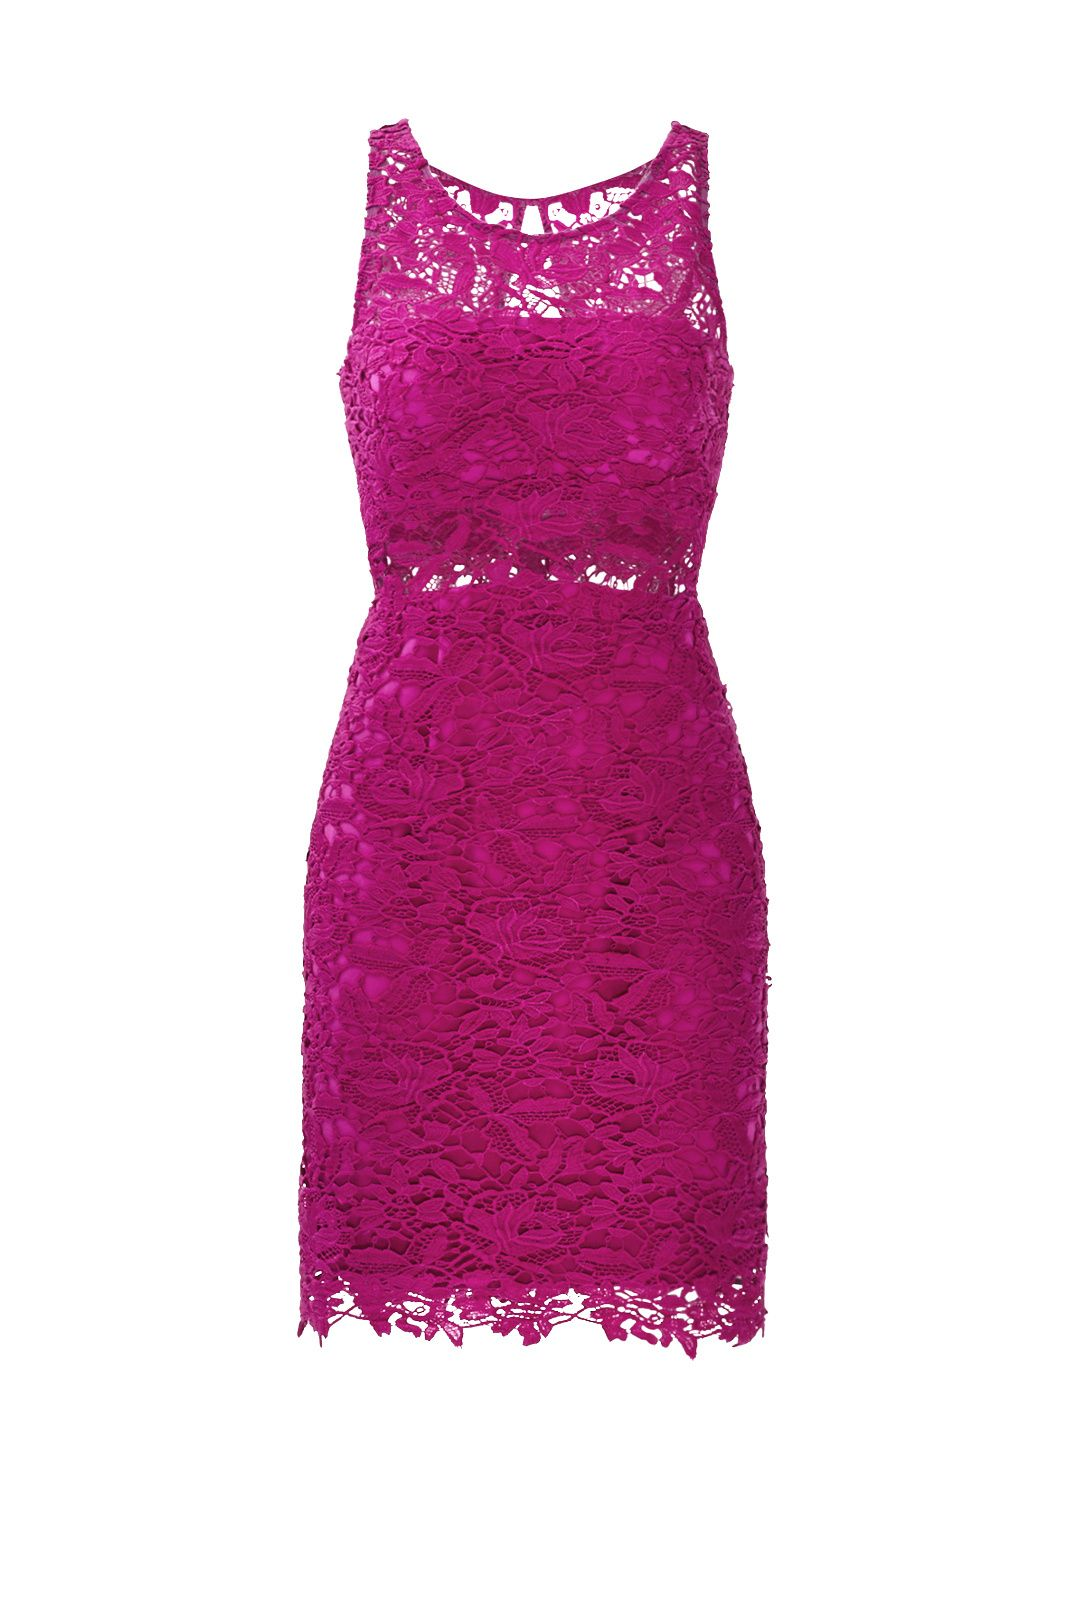 Mulberry Lace Sheath Dress by ML Monique Lhuillier for $70 | Rent the Runway